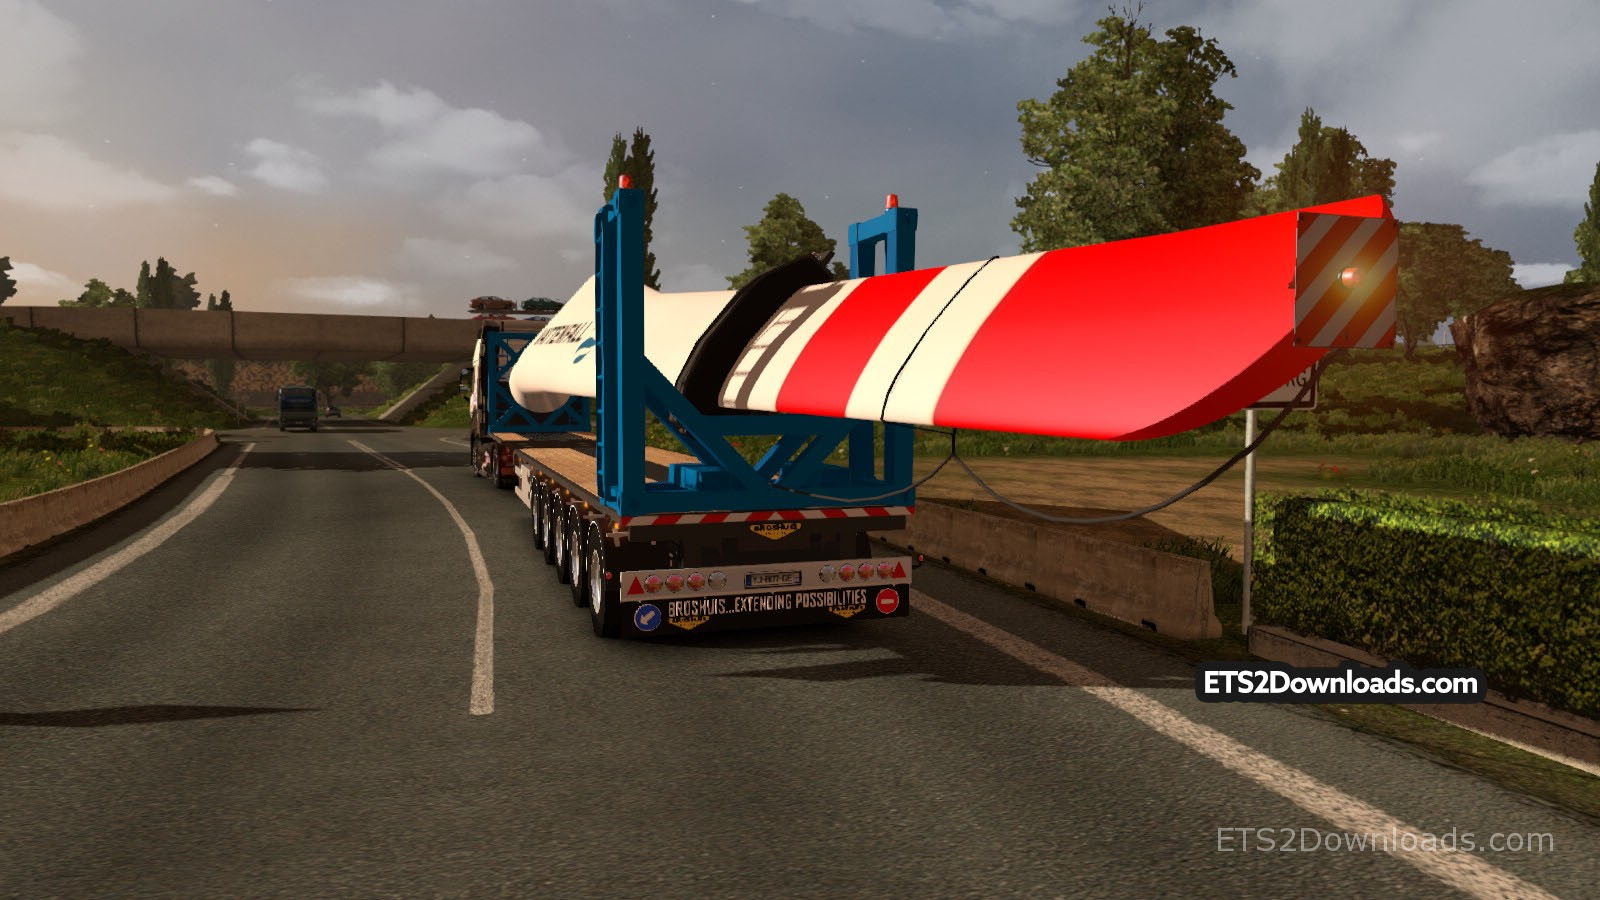 wind-turbine-blade-trailer-1